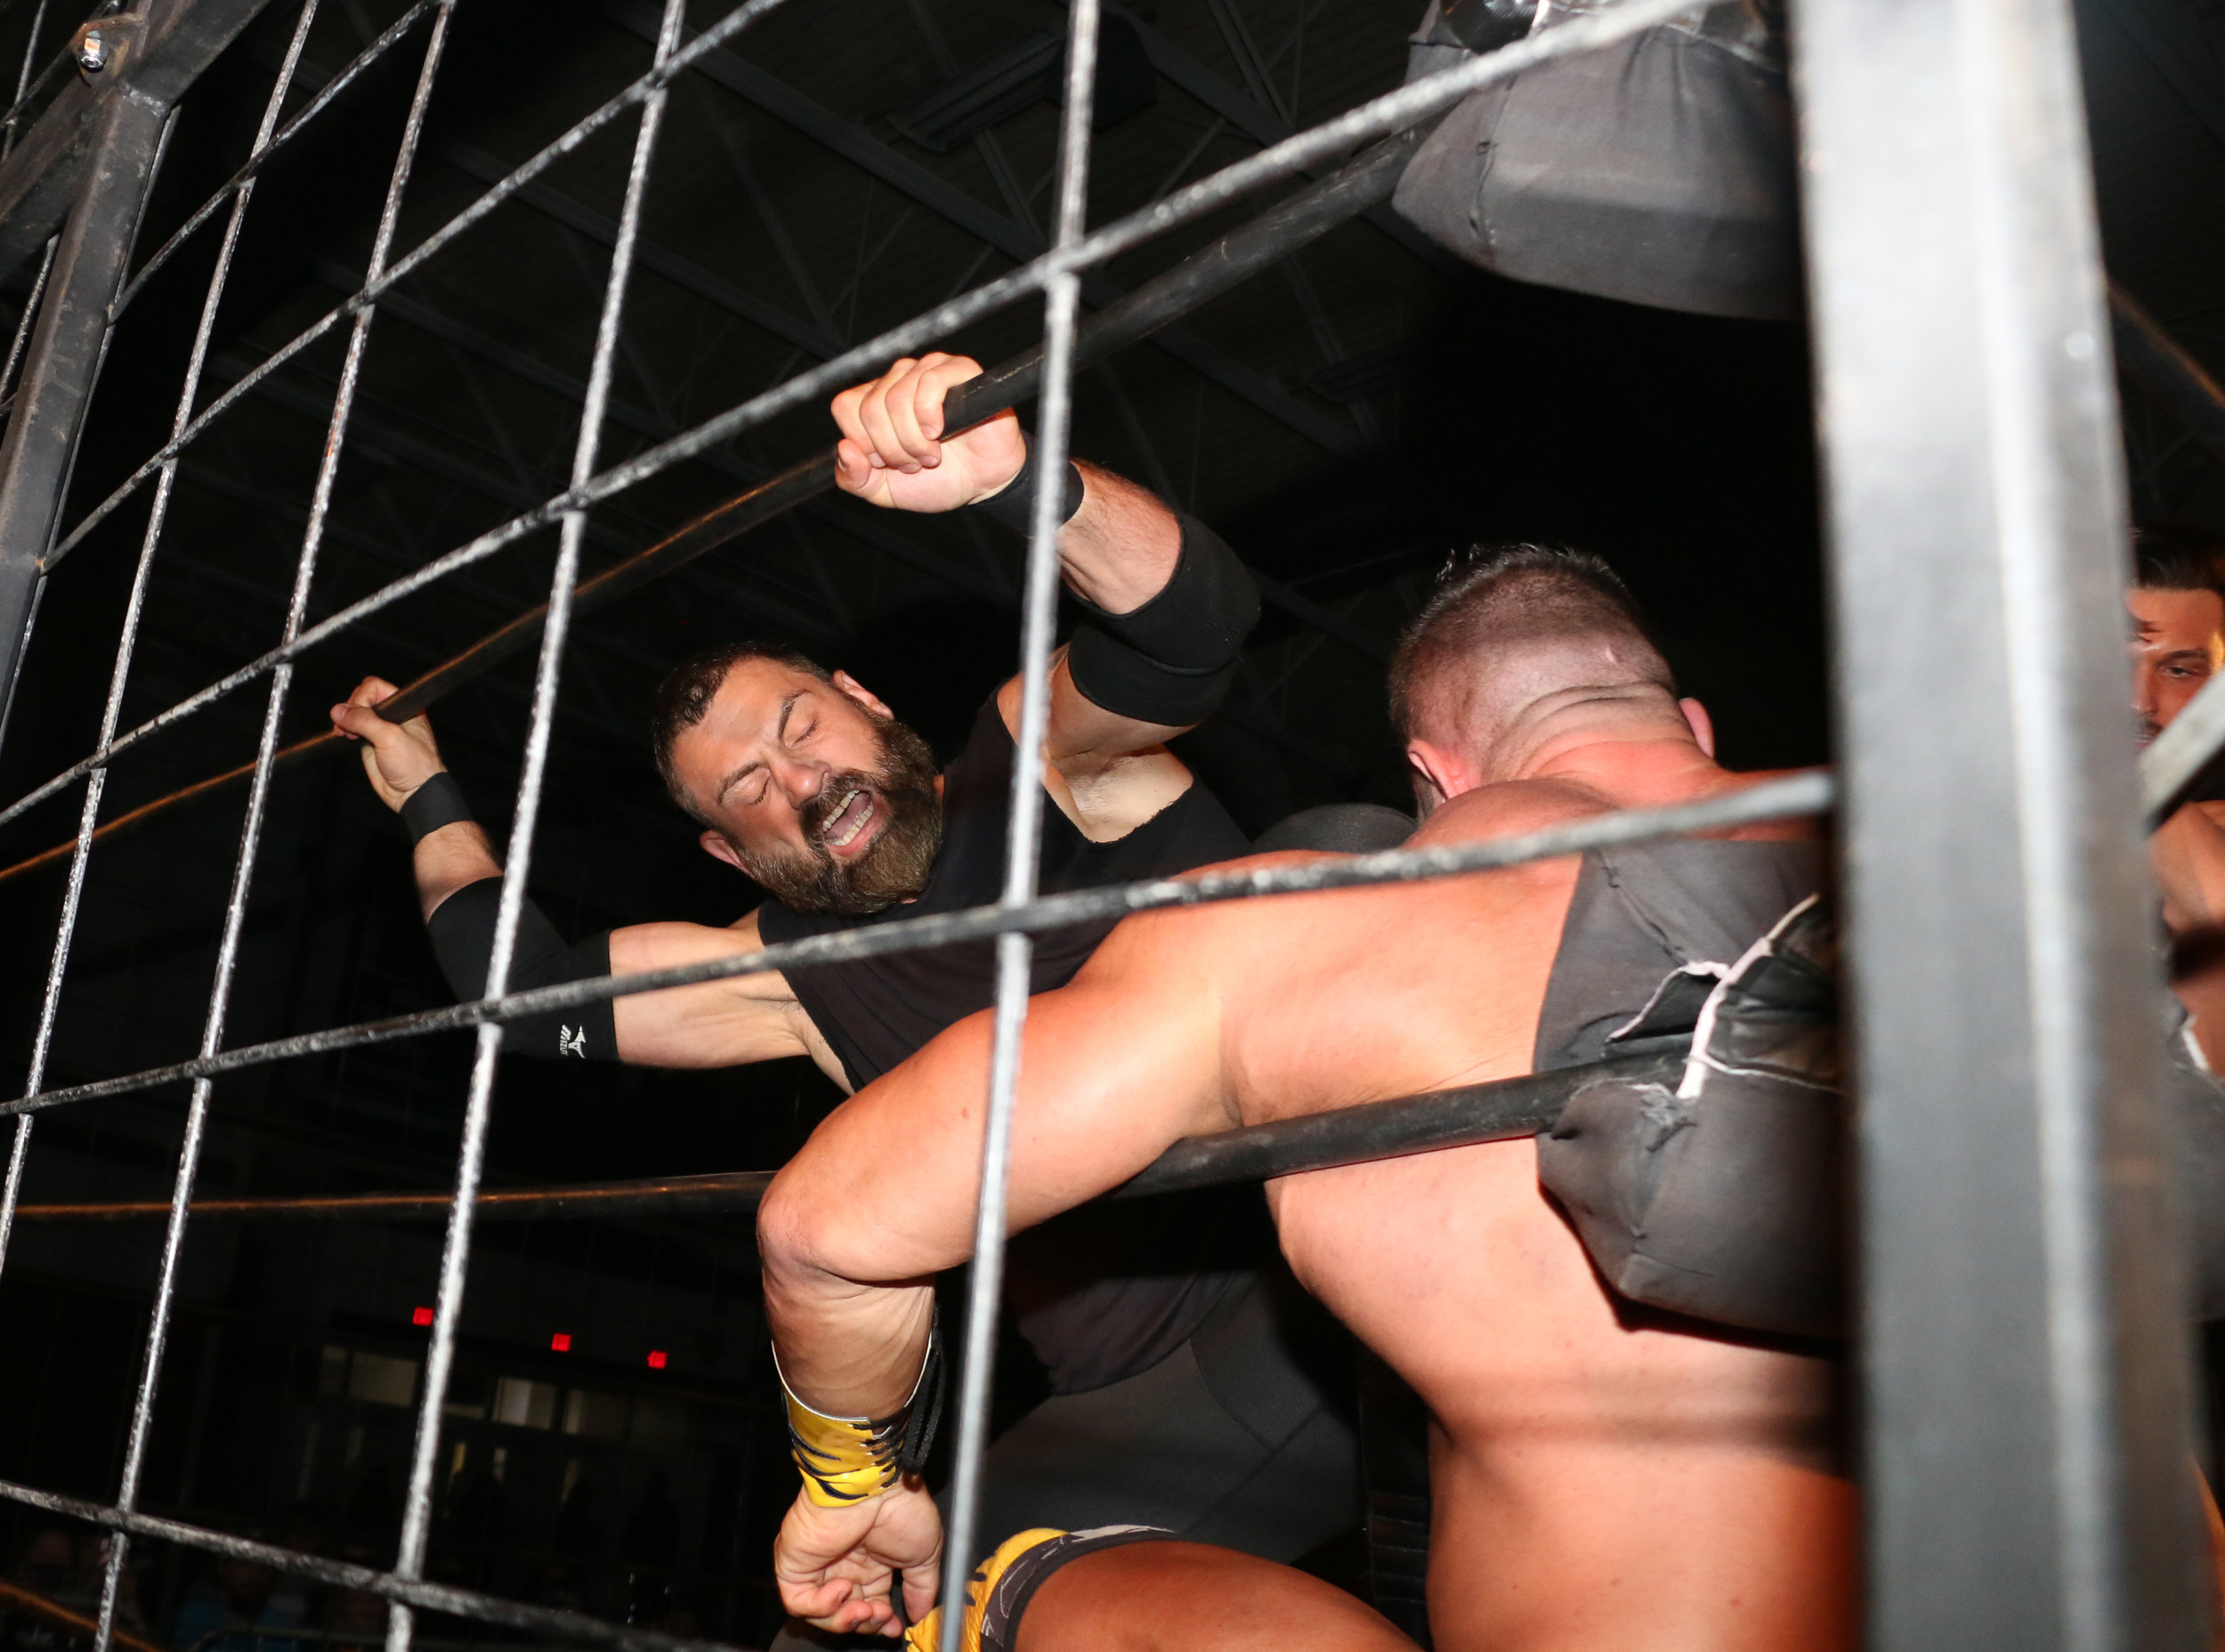 Austin Aries kicks Brian Cage in the corner during the three-way cage match for the Warrior Wrestling Championship.